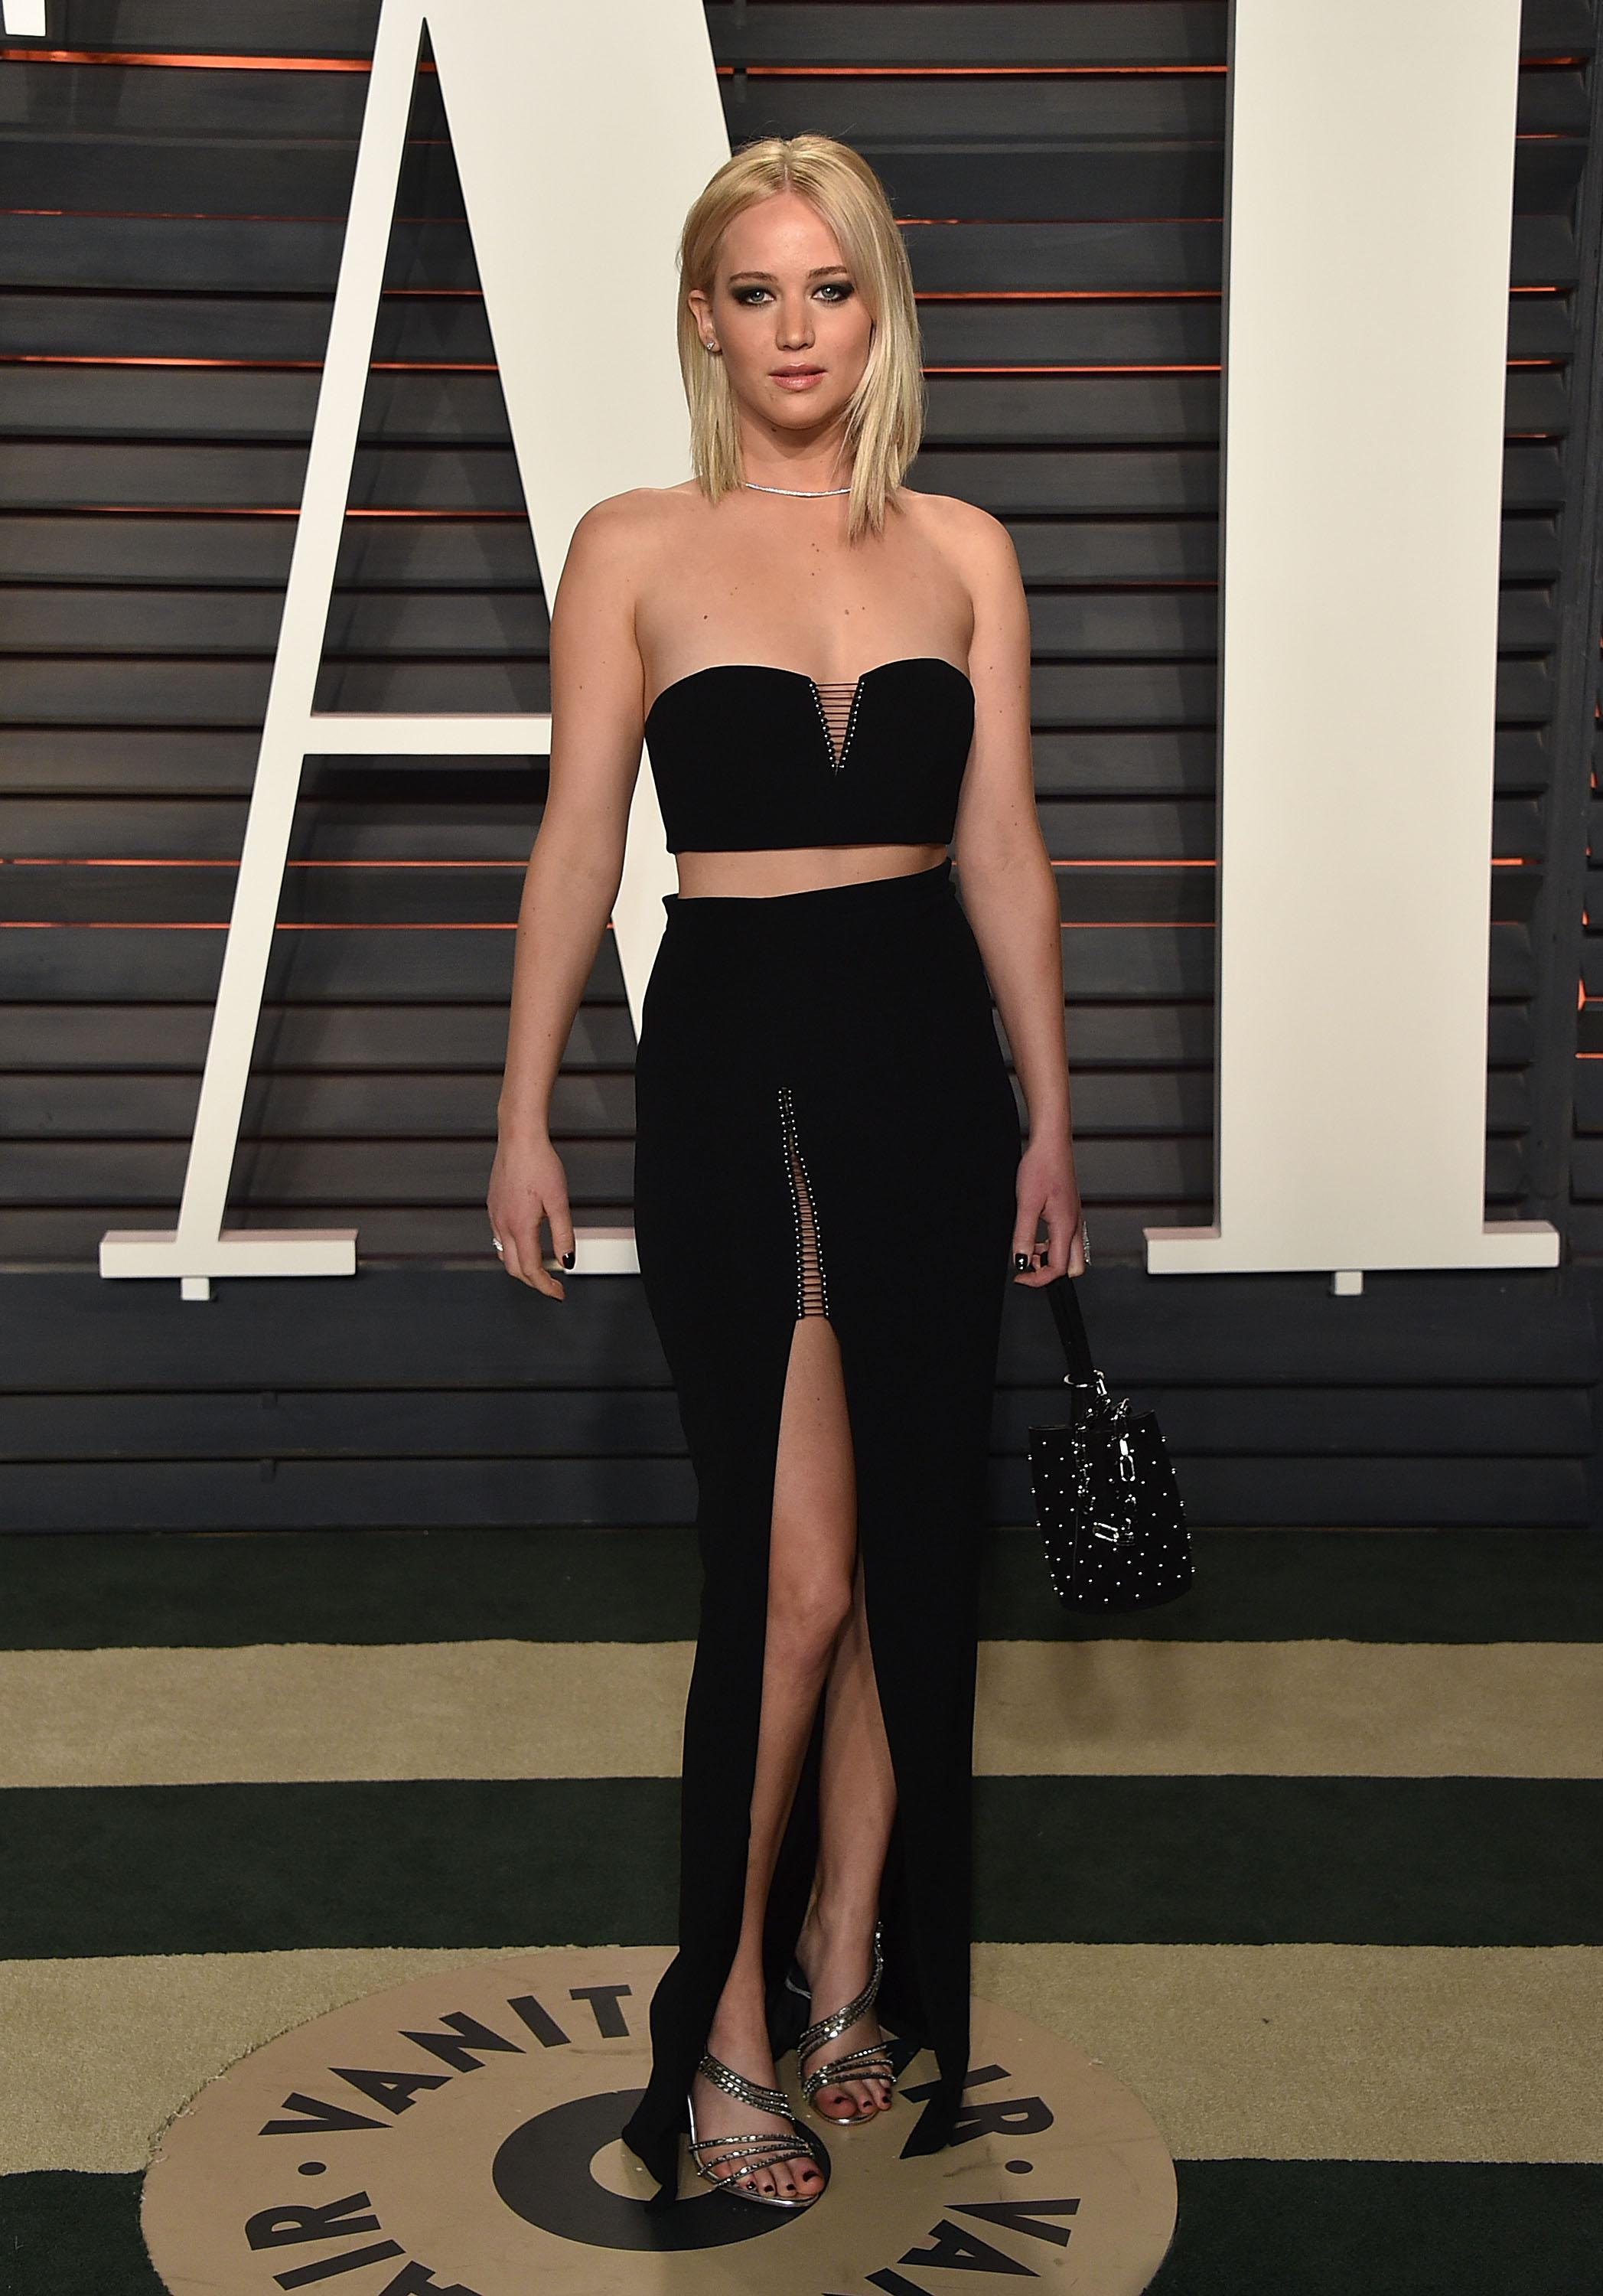 What is Jennifer Lawrence's net worth, what are her biggest films, has she split from Darren Aronofsky and what was the naked picture leak?